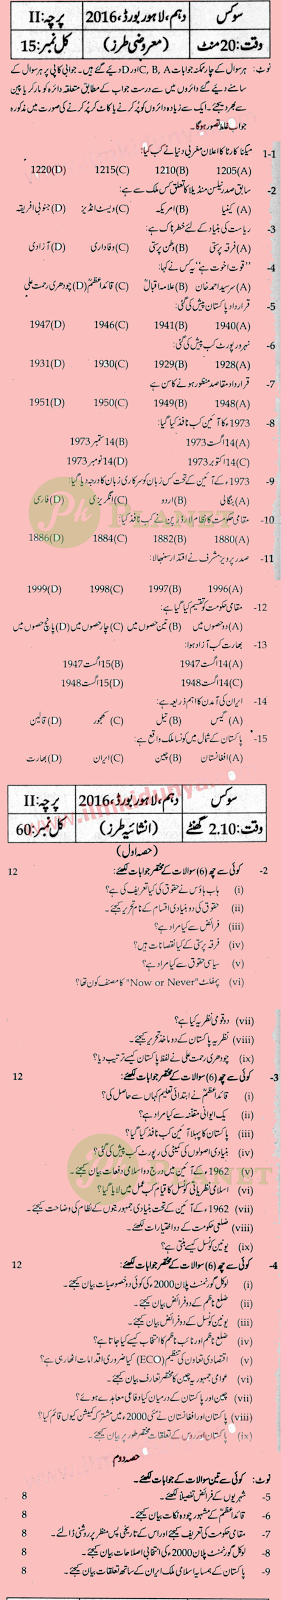 Past Papers of 10th Class Lahore Board Civics 2016